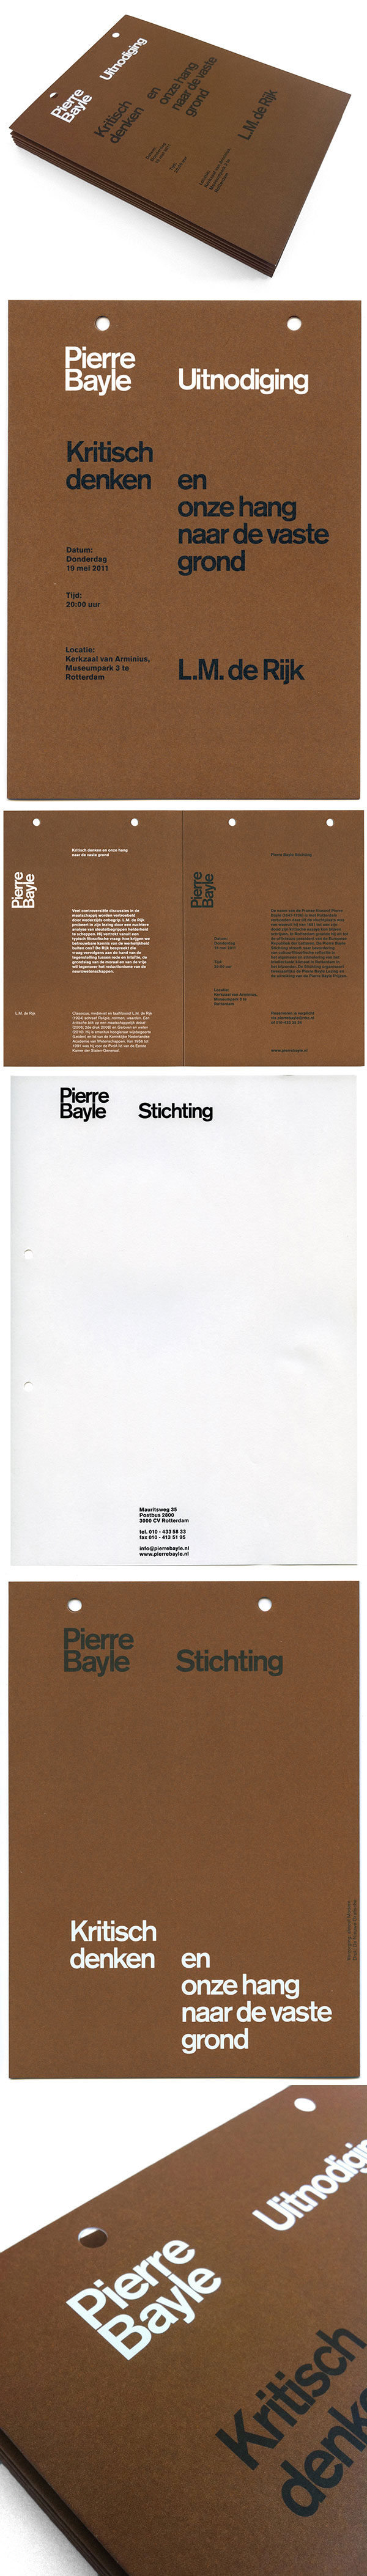 The Pierre Bayle Foundation identity :: http://www.almostmodern.com